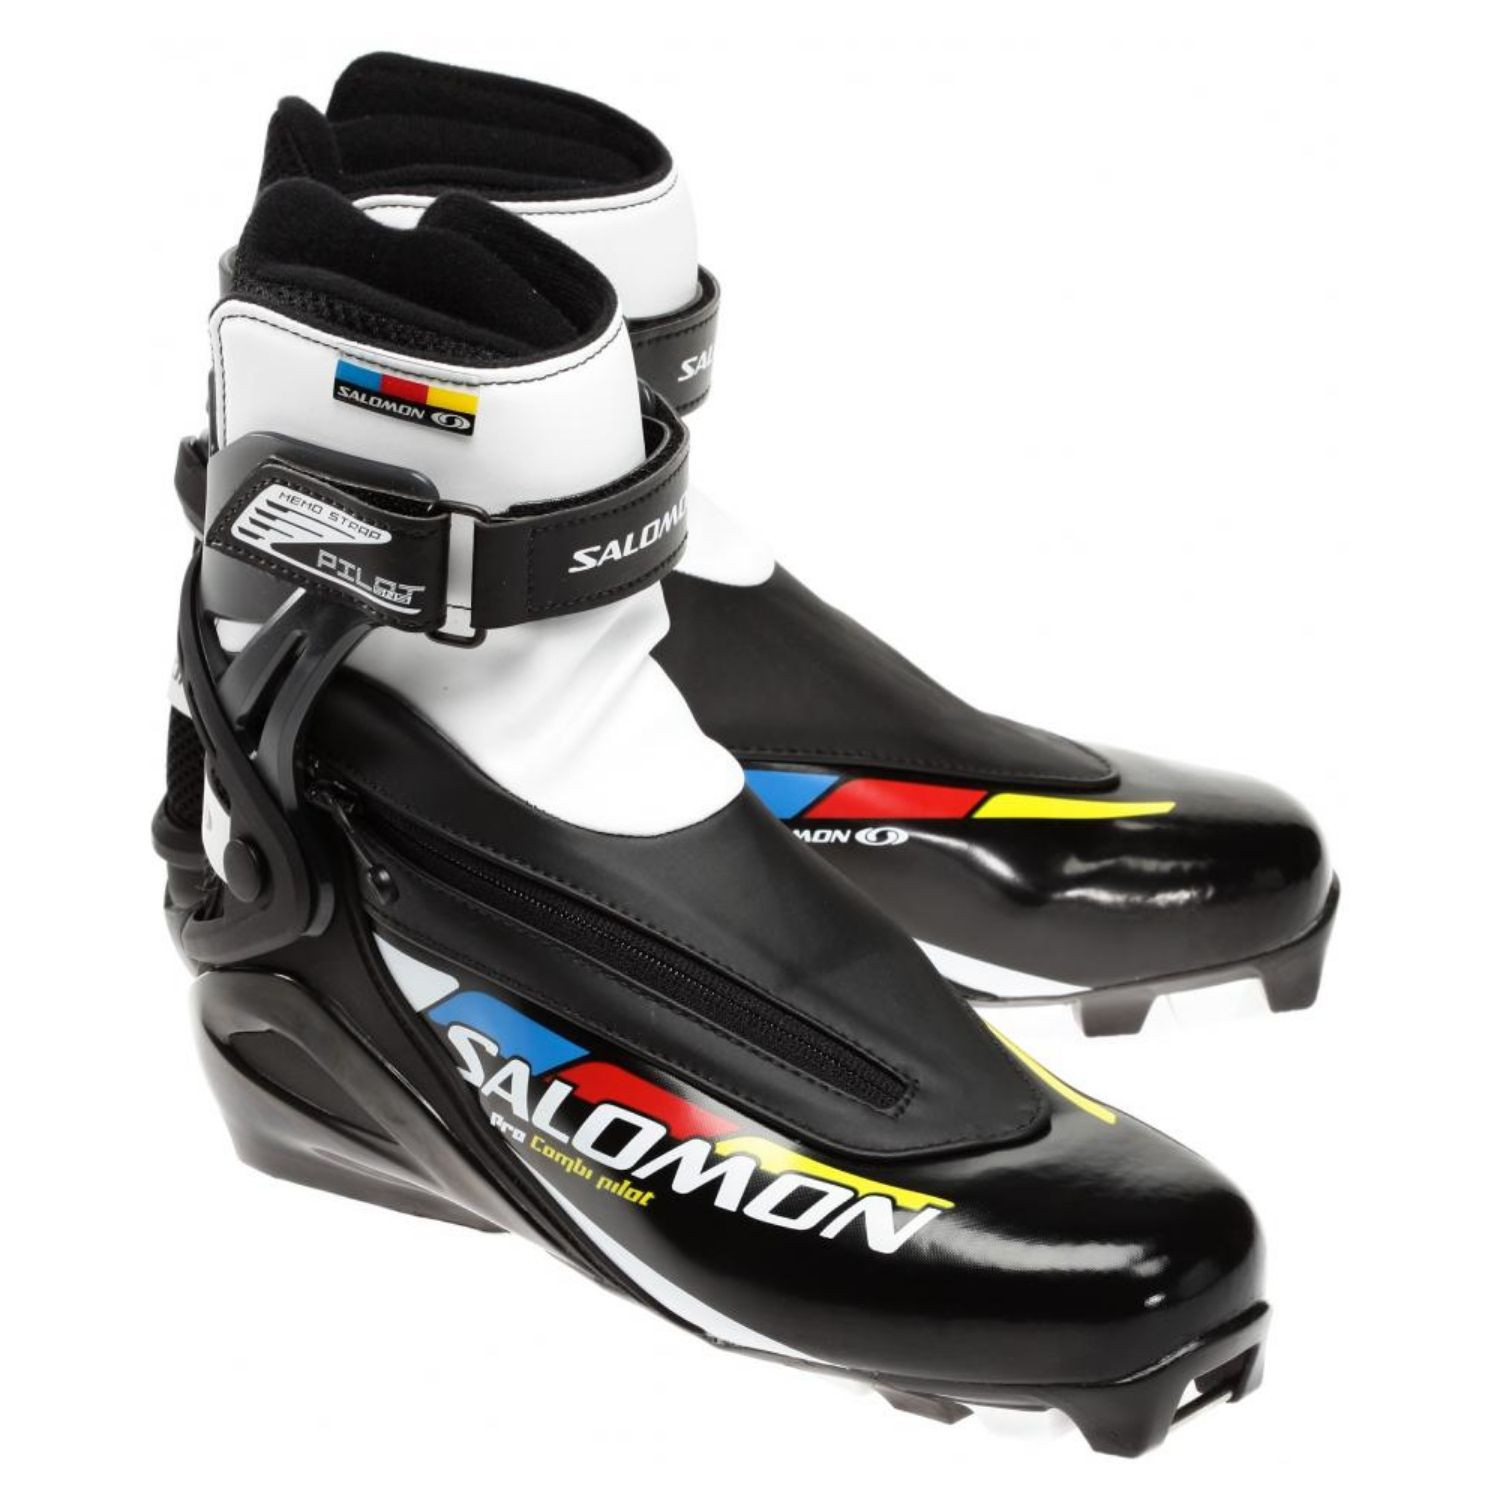 SALOMON Pro Combi Pilot Black Čierna uk 6